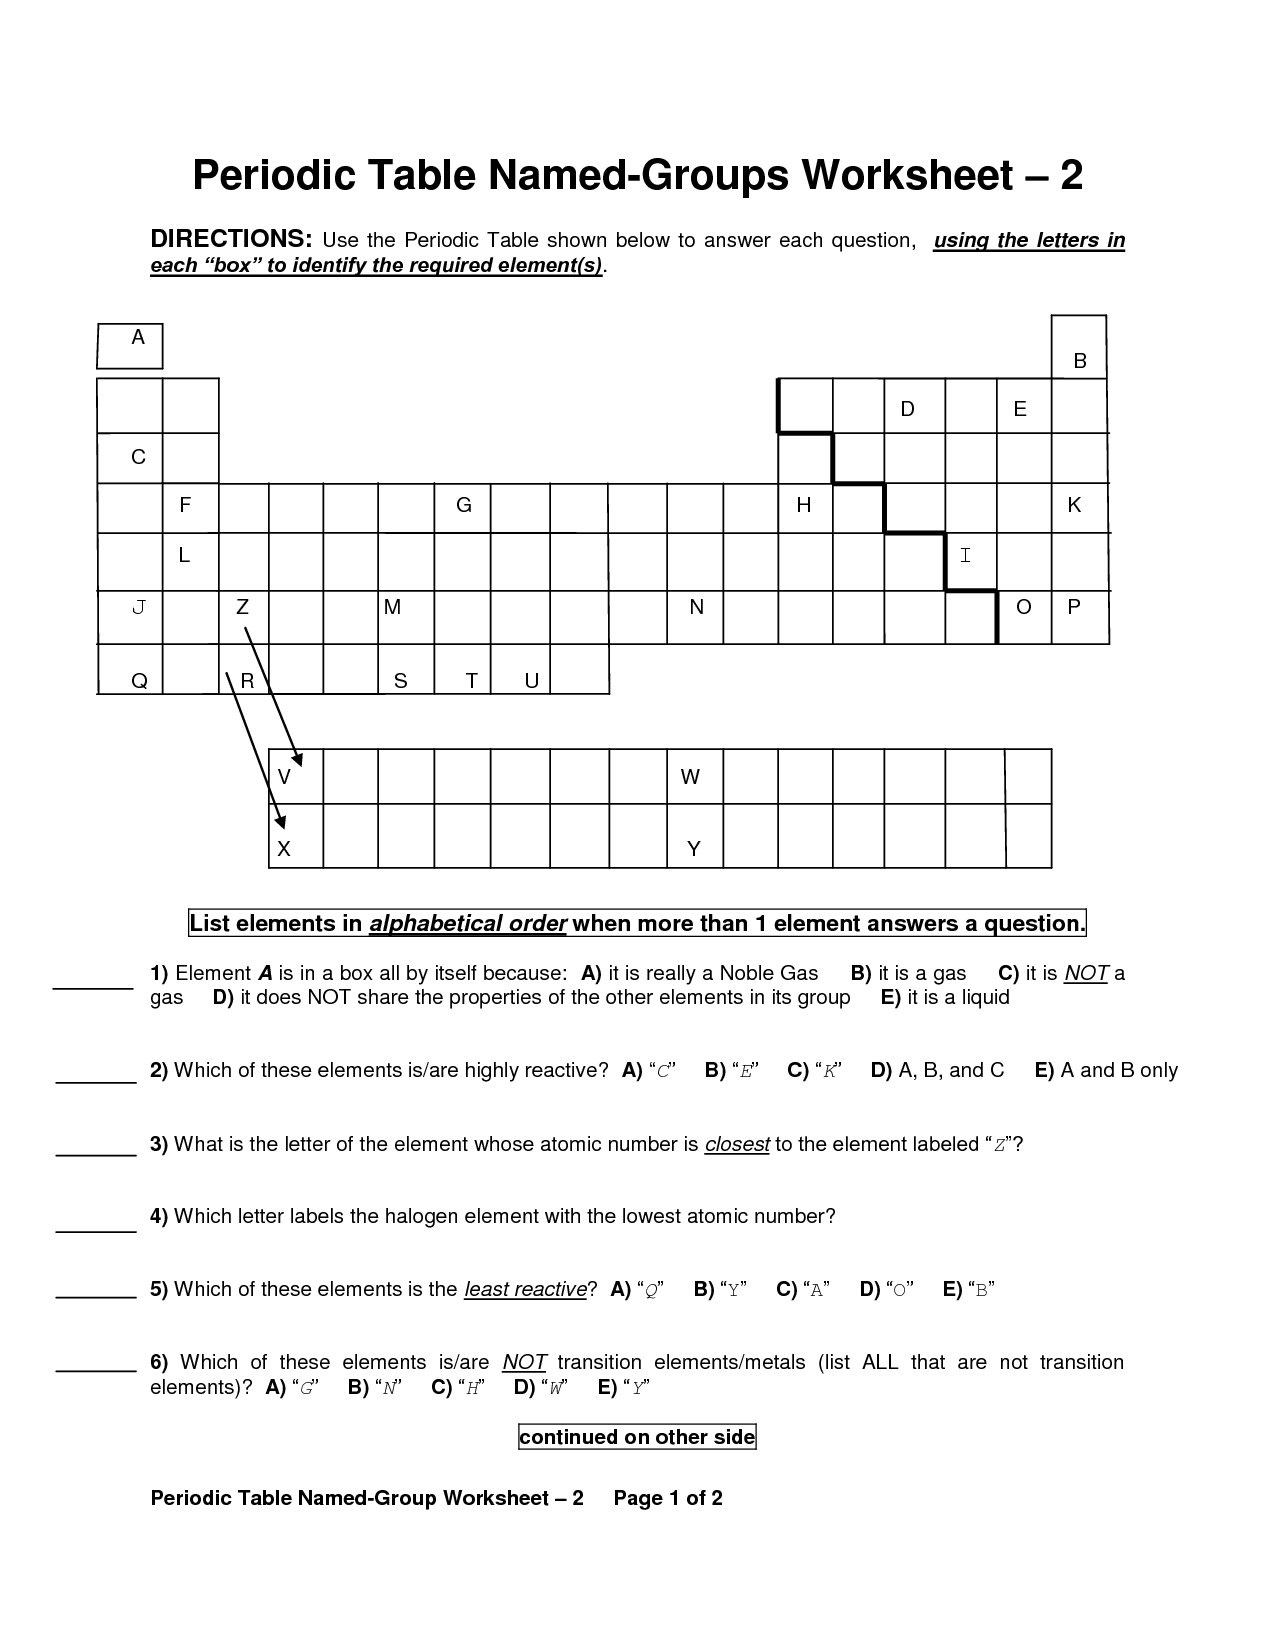 The Periodic Table Worksheet Key